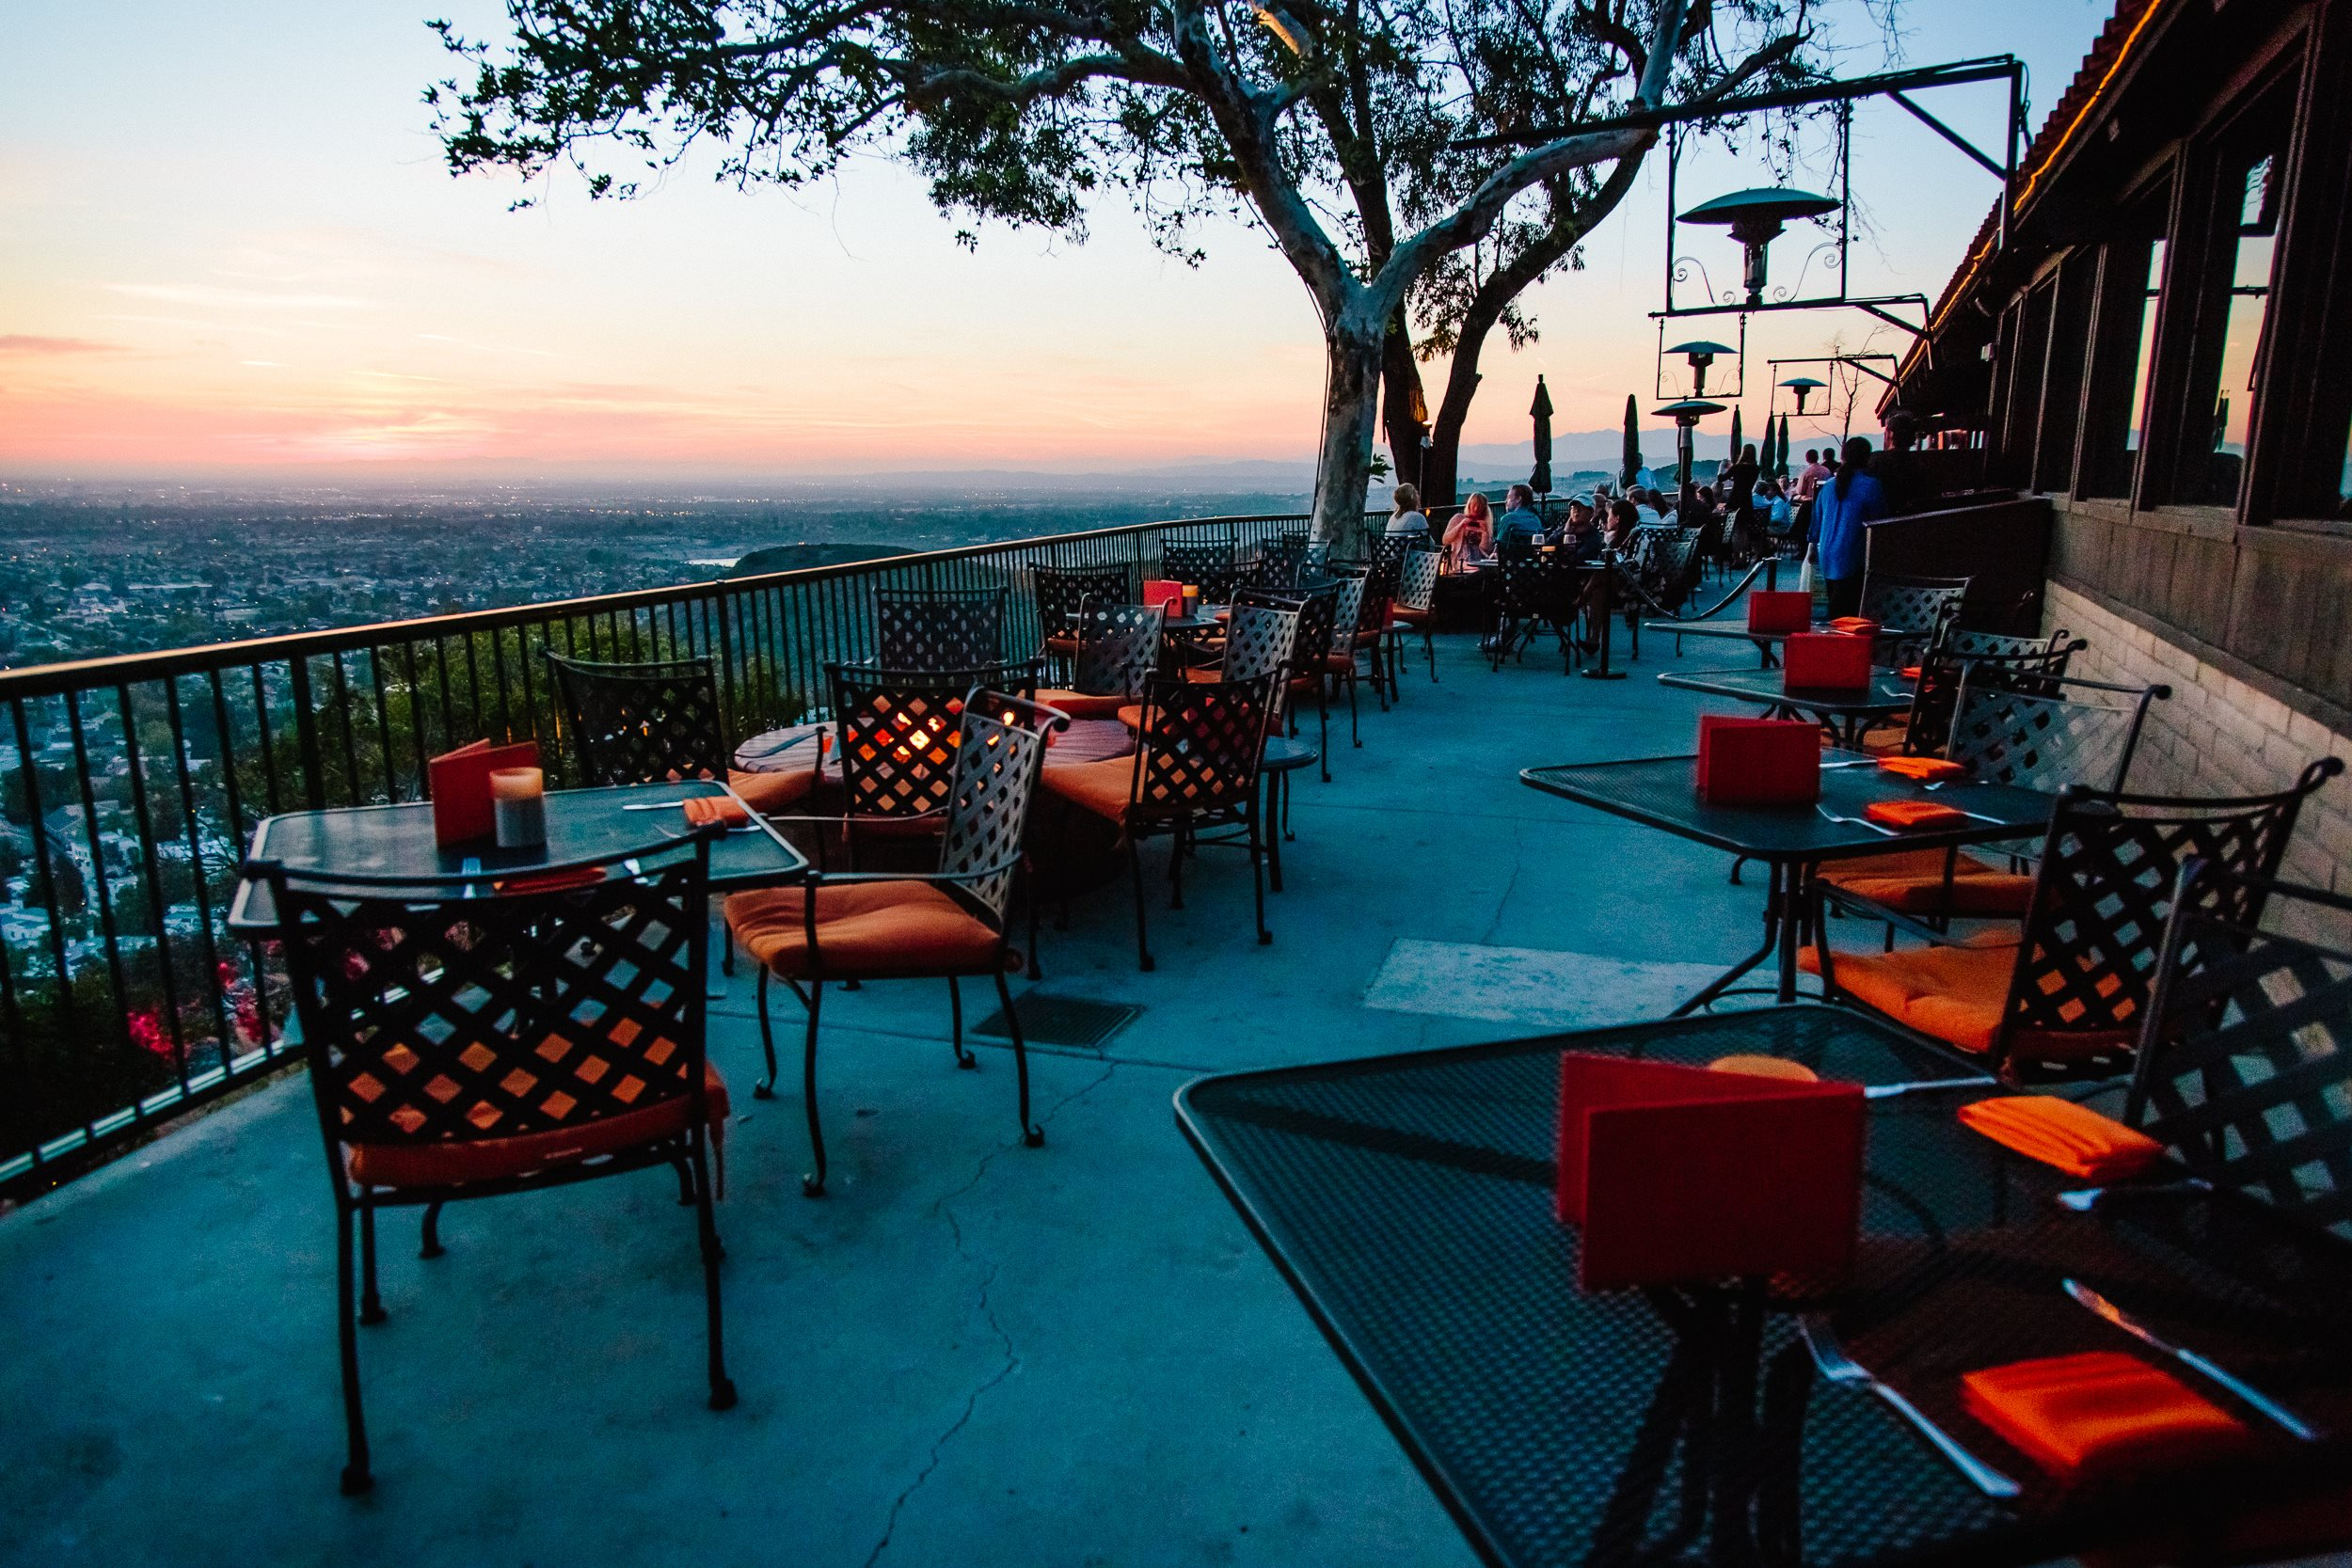 Orange Hill Patio at Sunset